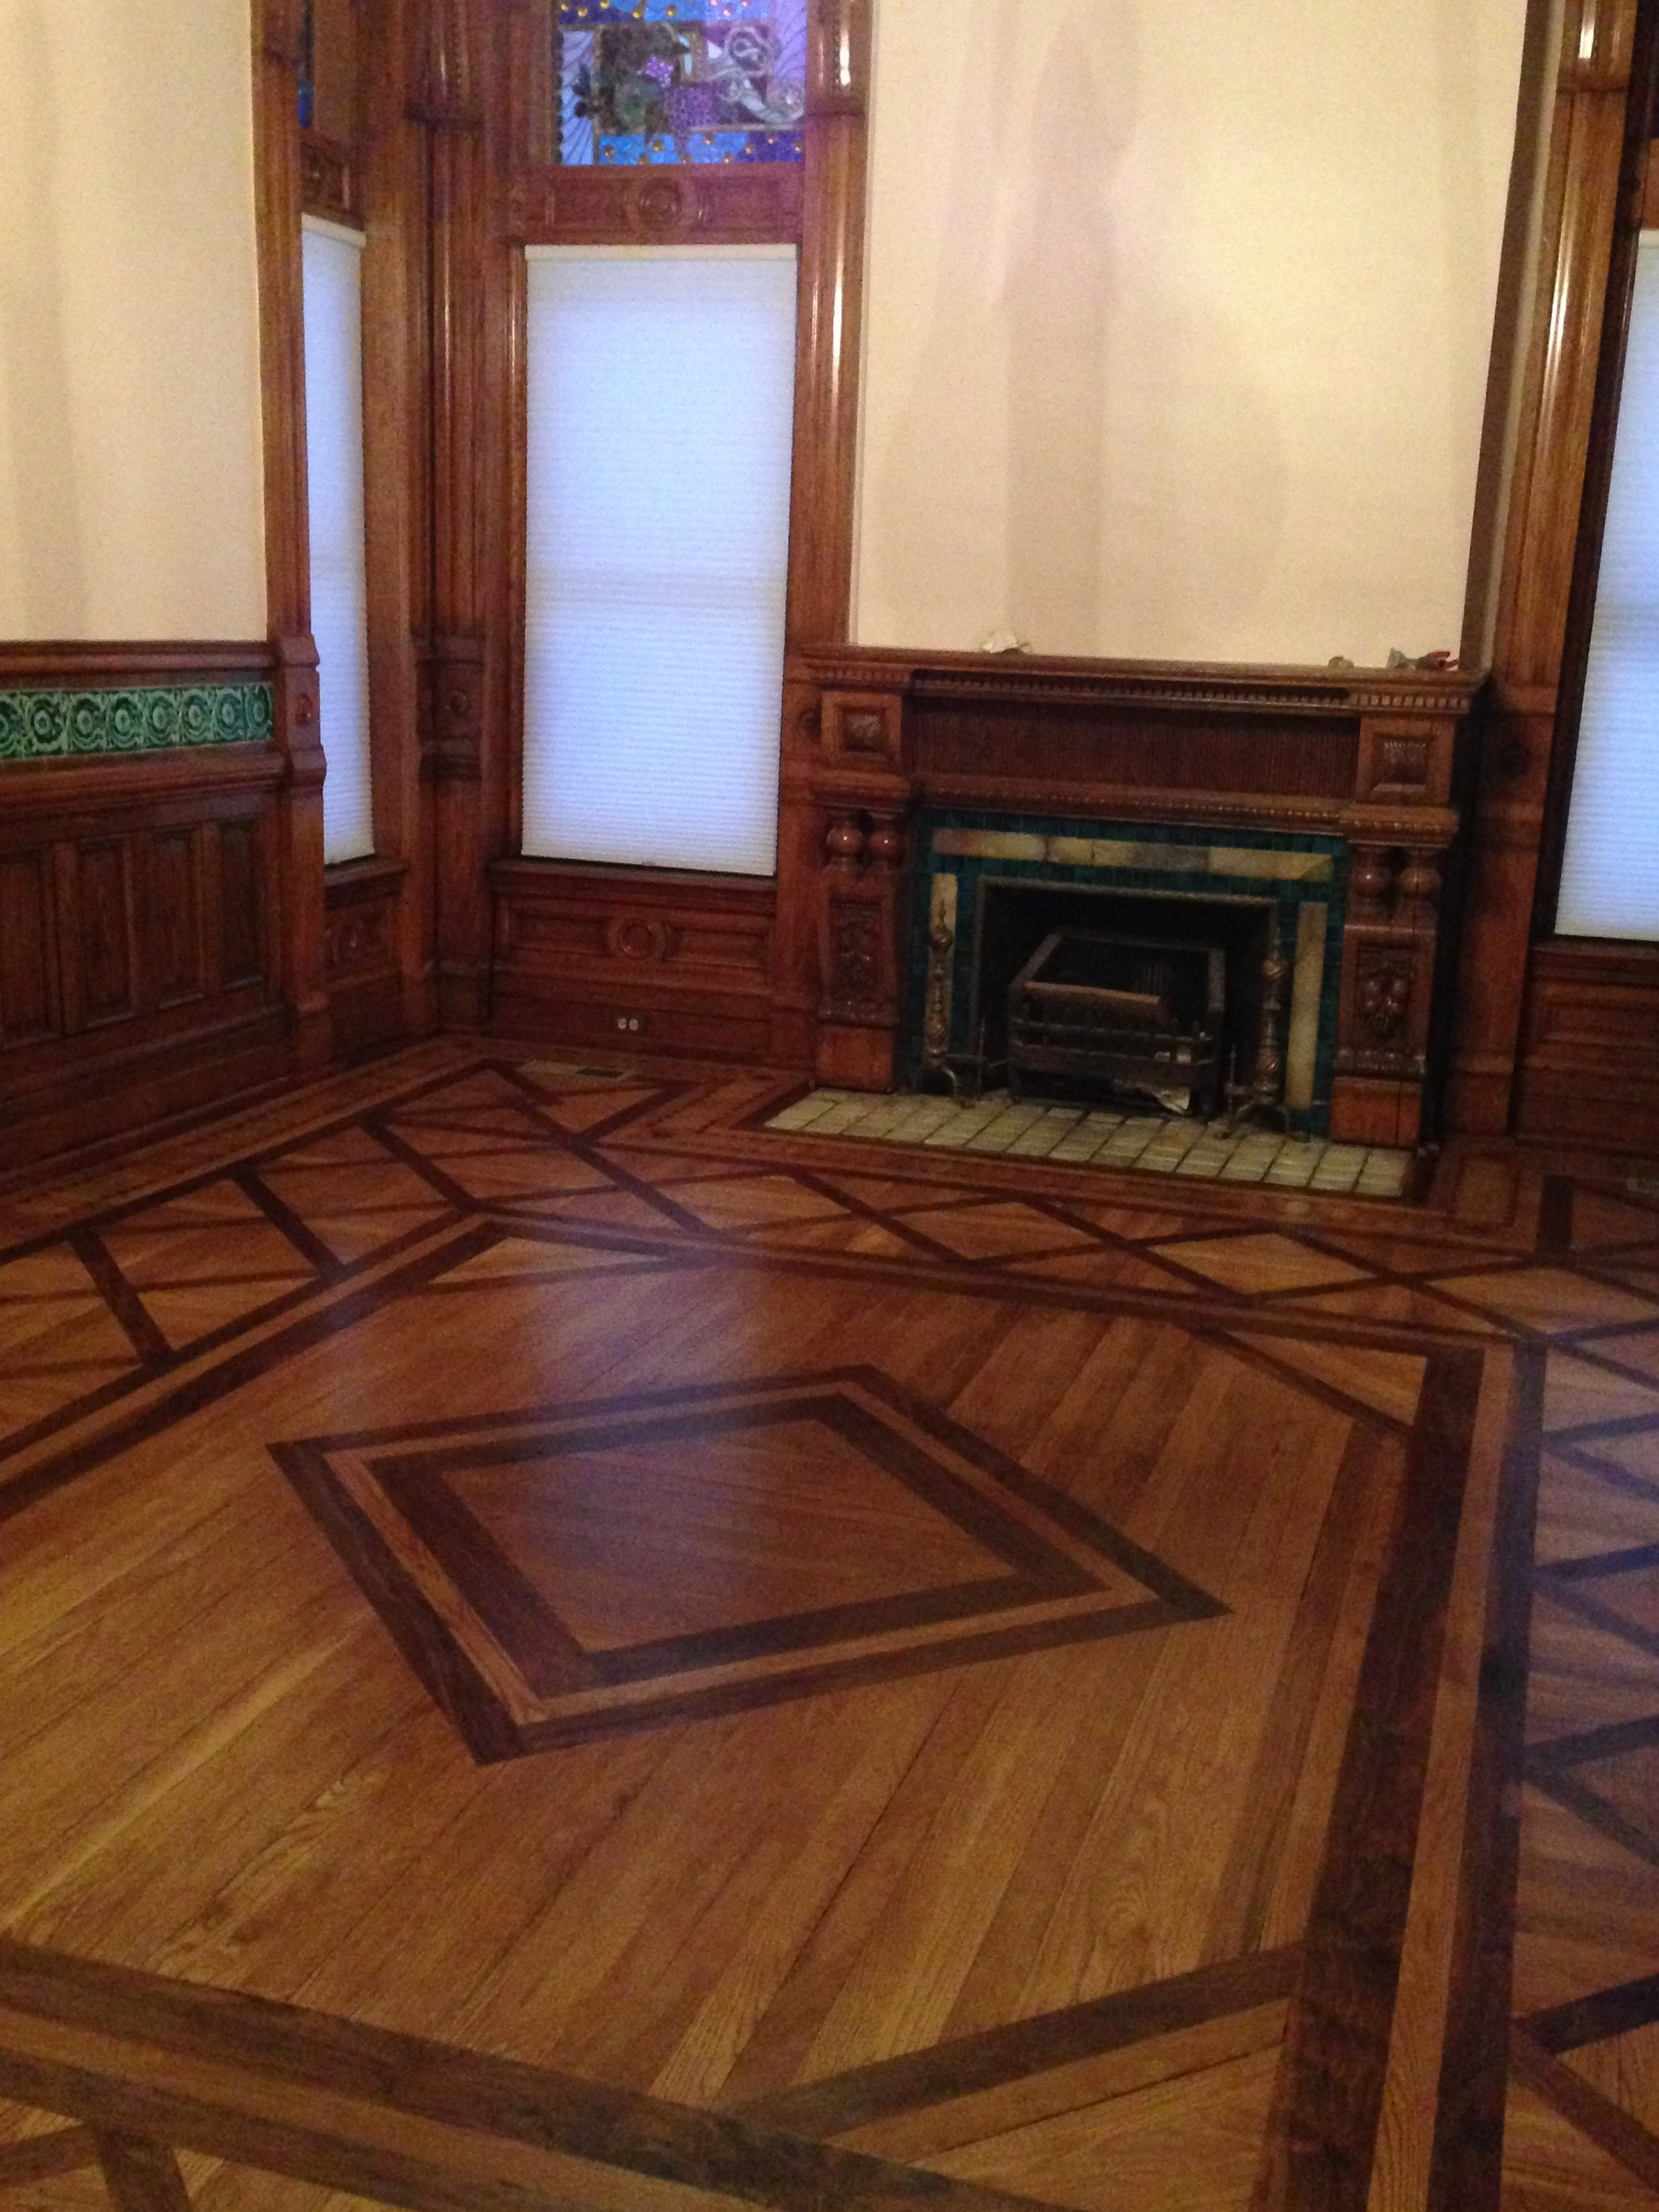 discount hardwood flooring knoxville tn of explore the shakespeare chateau inn and gardens in here shown at left the faithful reproduction of the parquet floor in the dining room the original floor suffered irreparable water damage during and